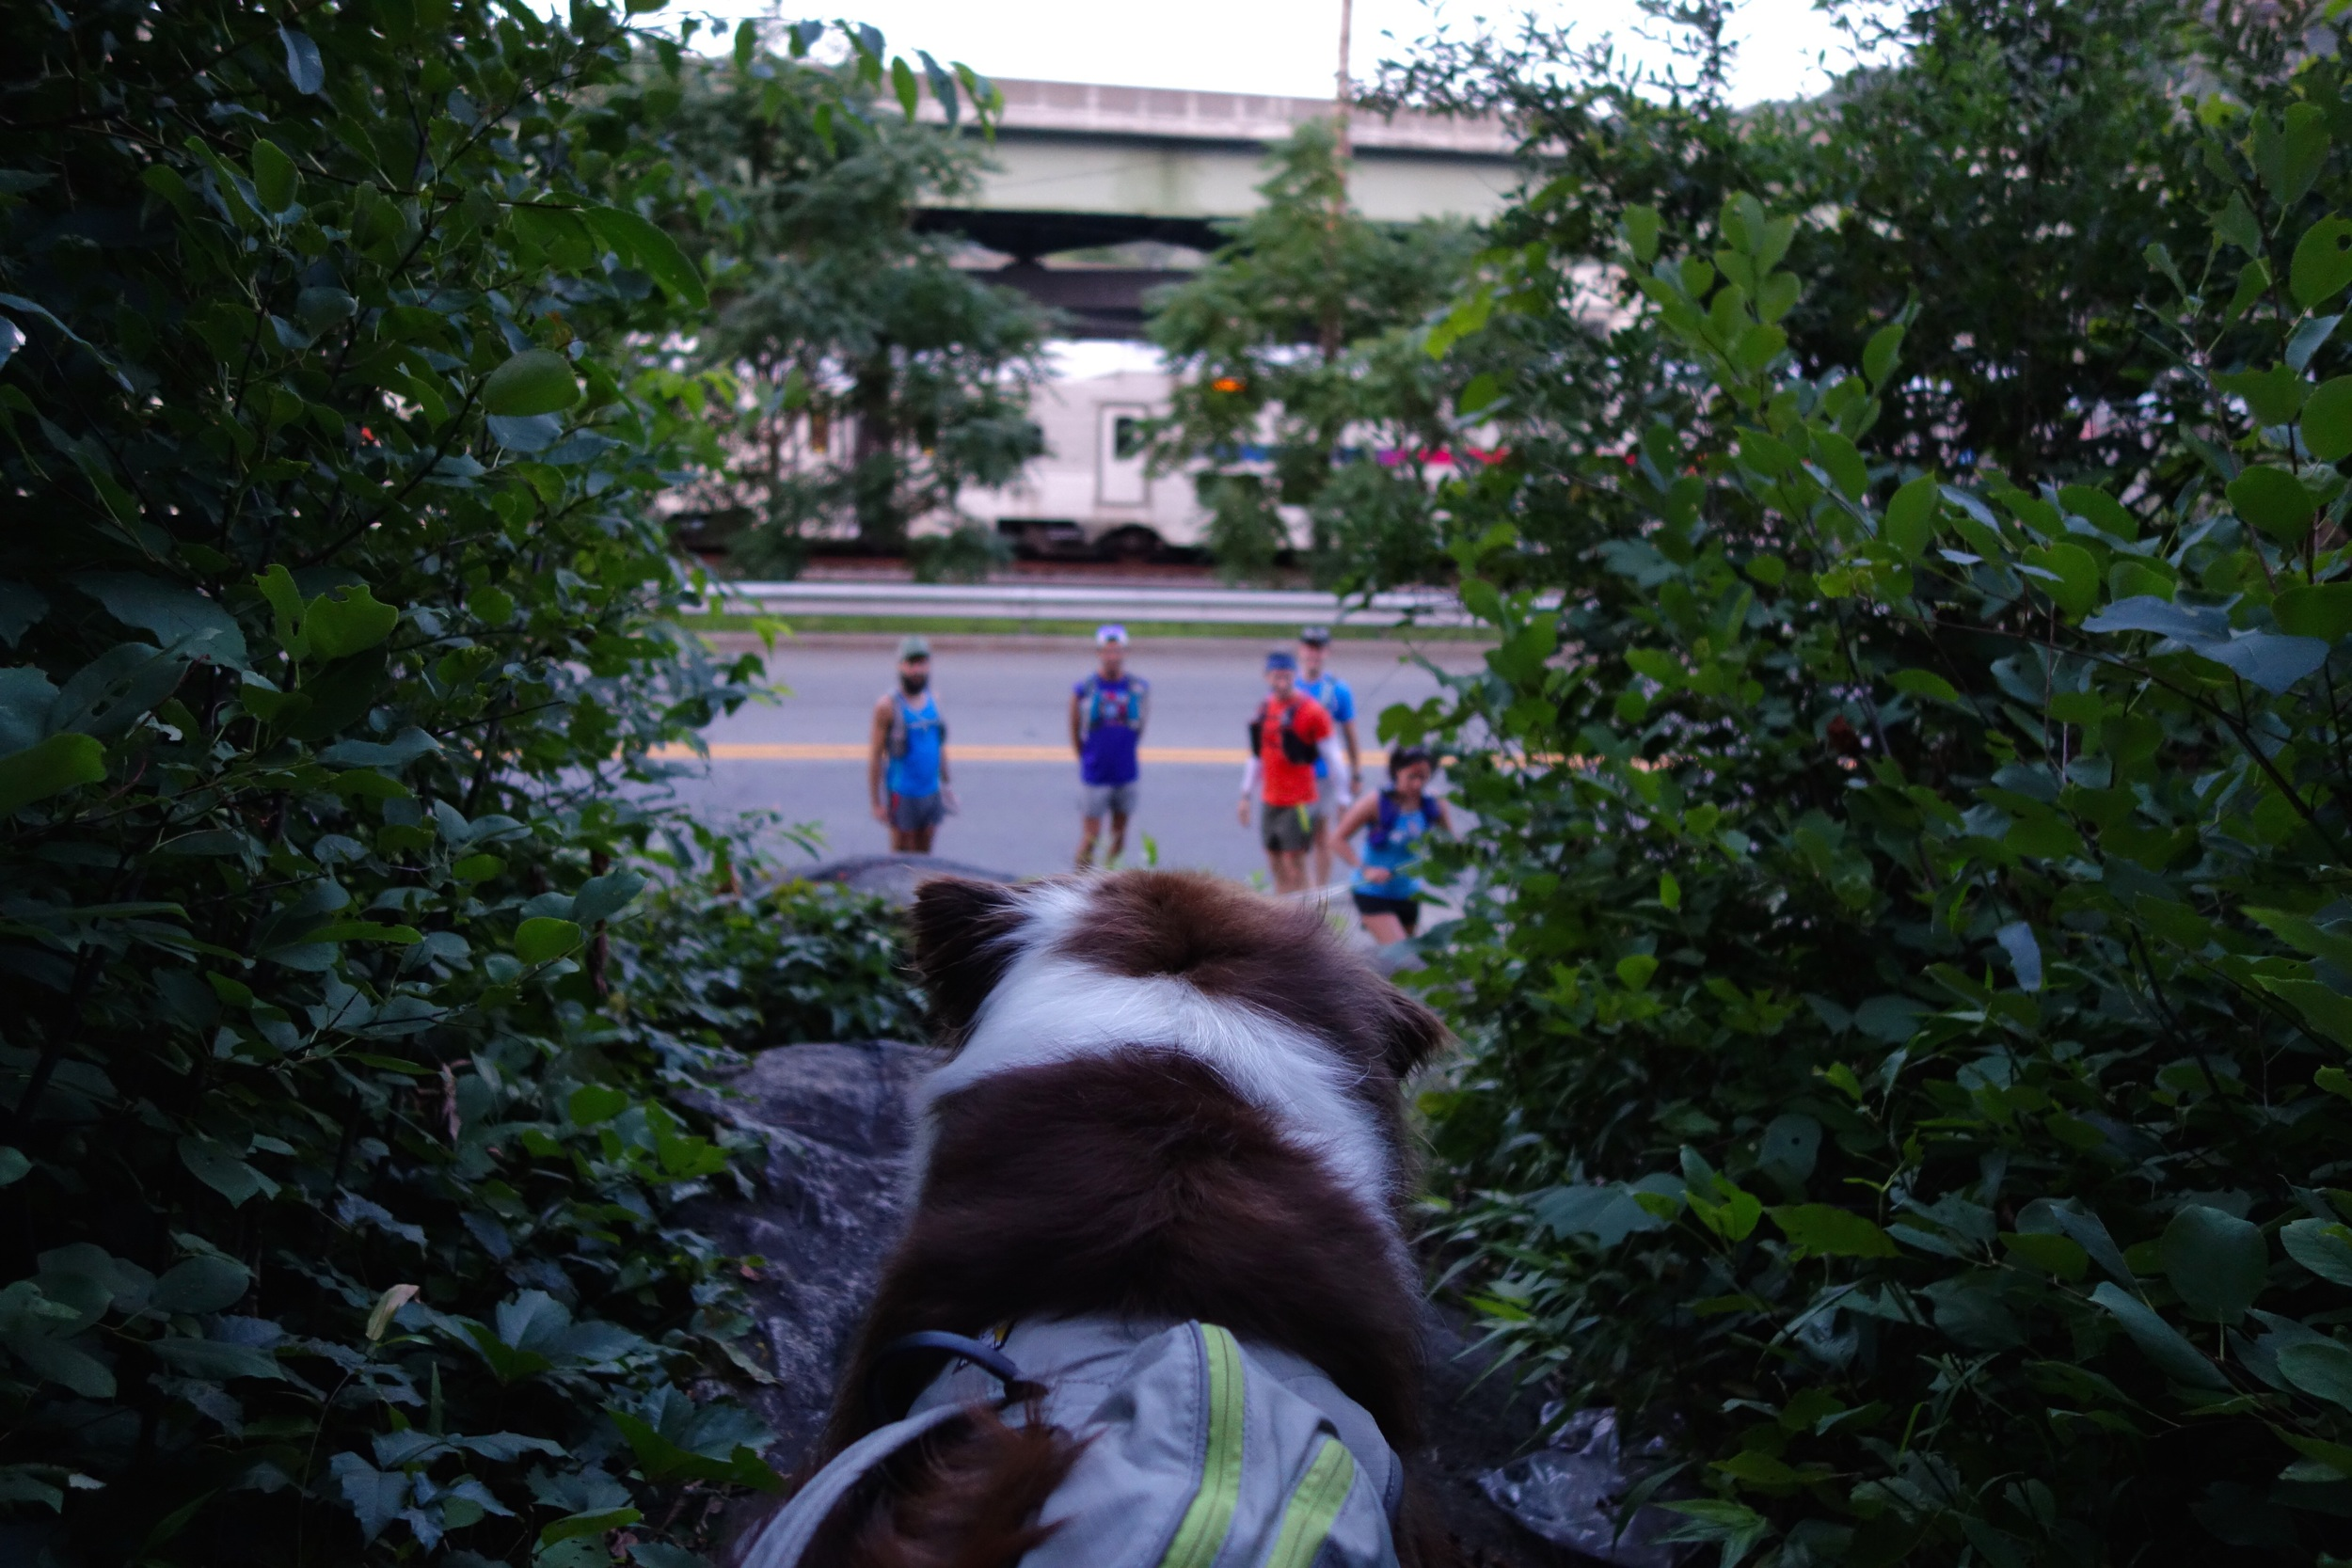 MPF Athlete Sammywaiting for the adventure to start! This is the beginning of the trail just off of route 59, slightly past the thruway underpass.